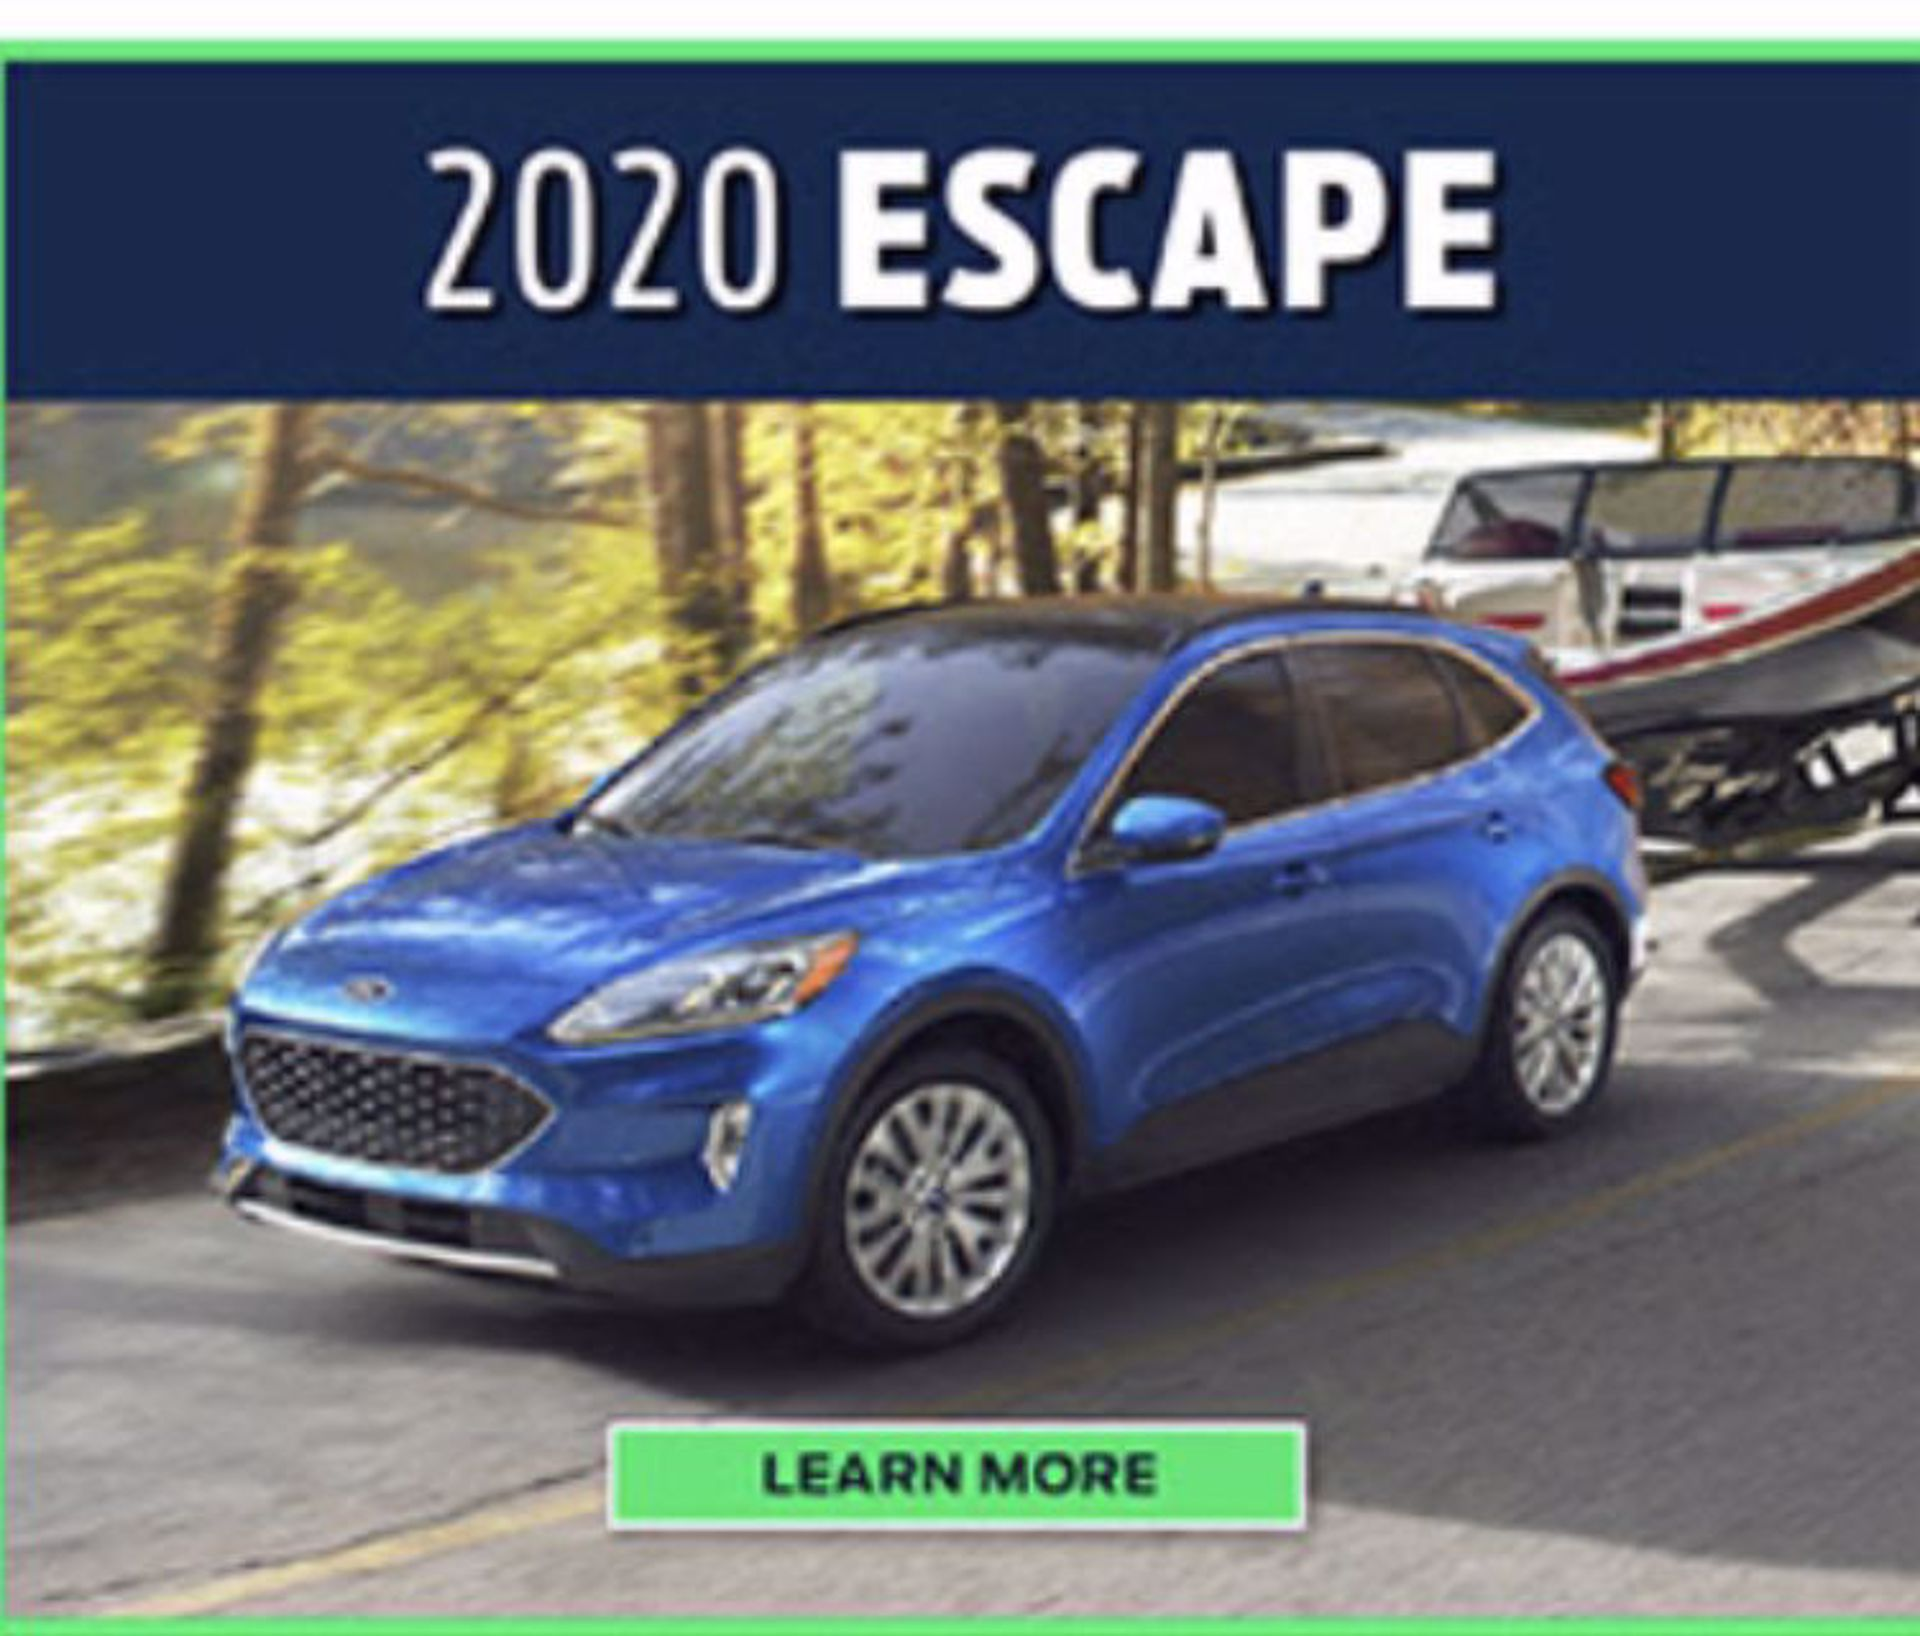 2020 Ford Escape!